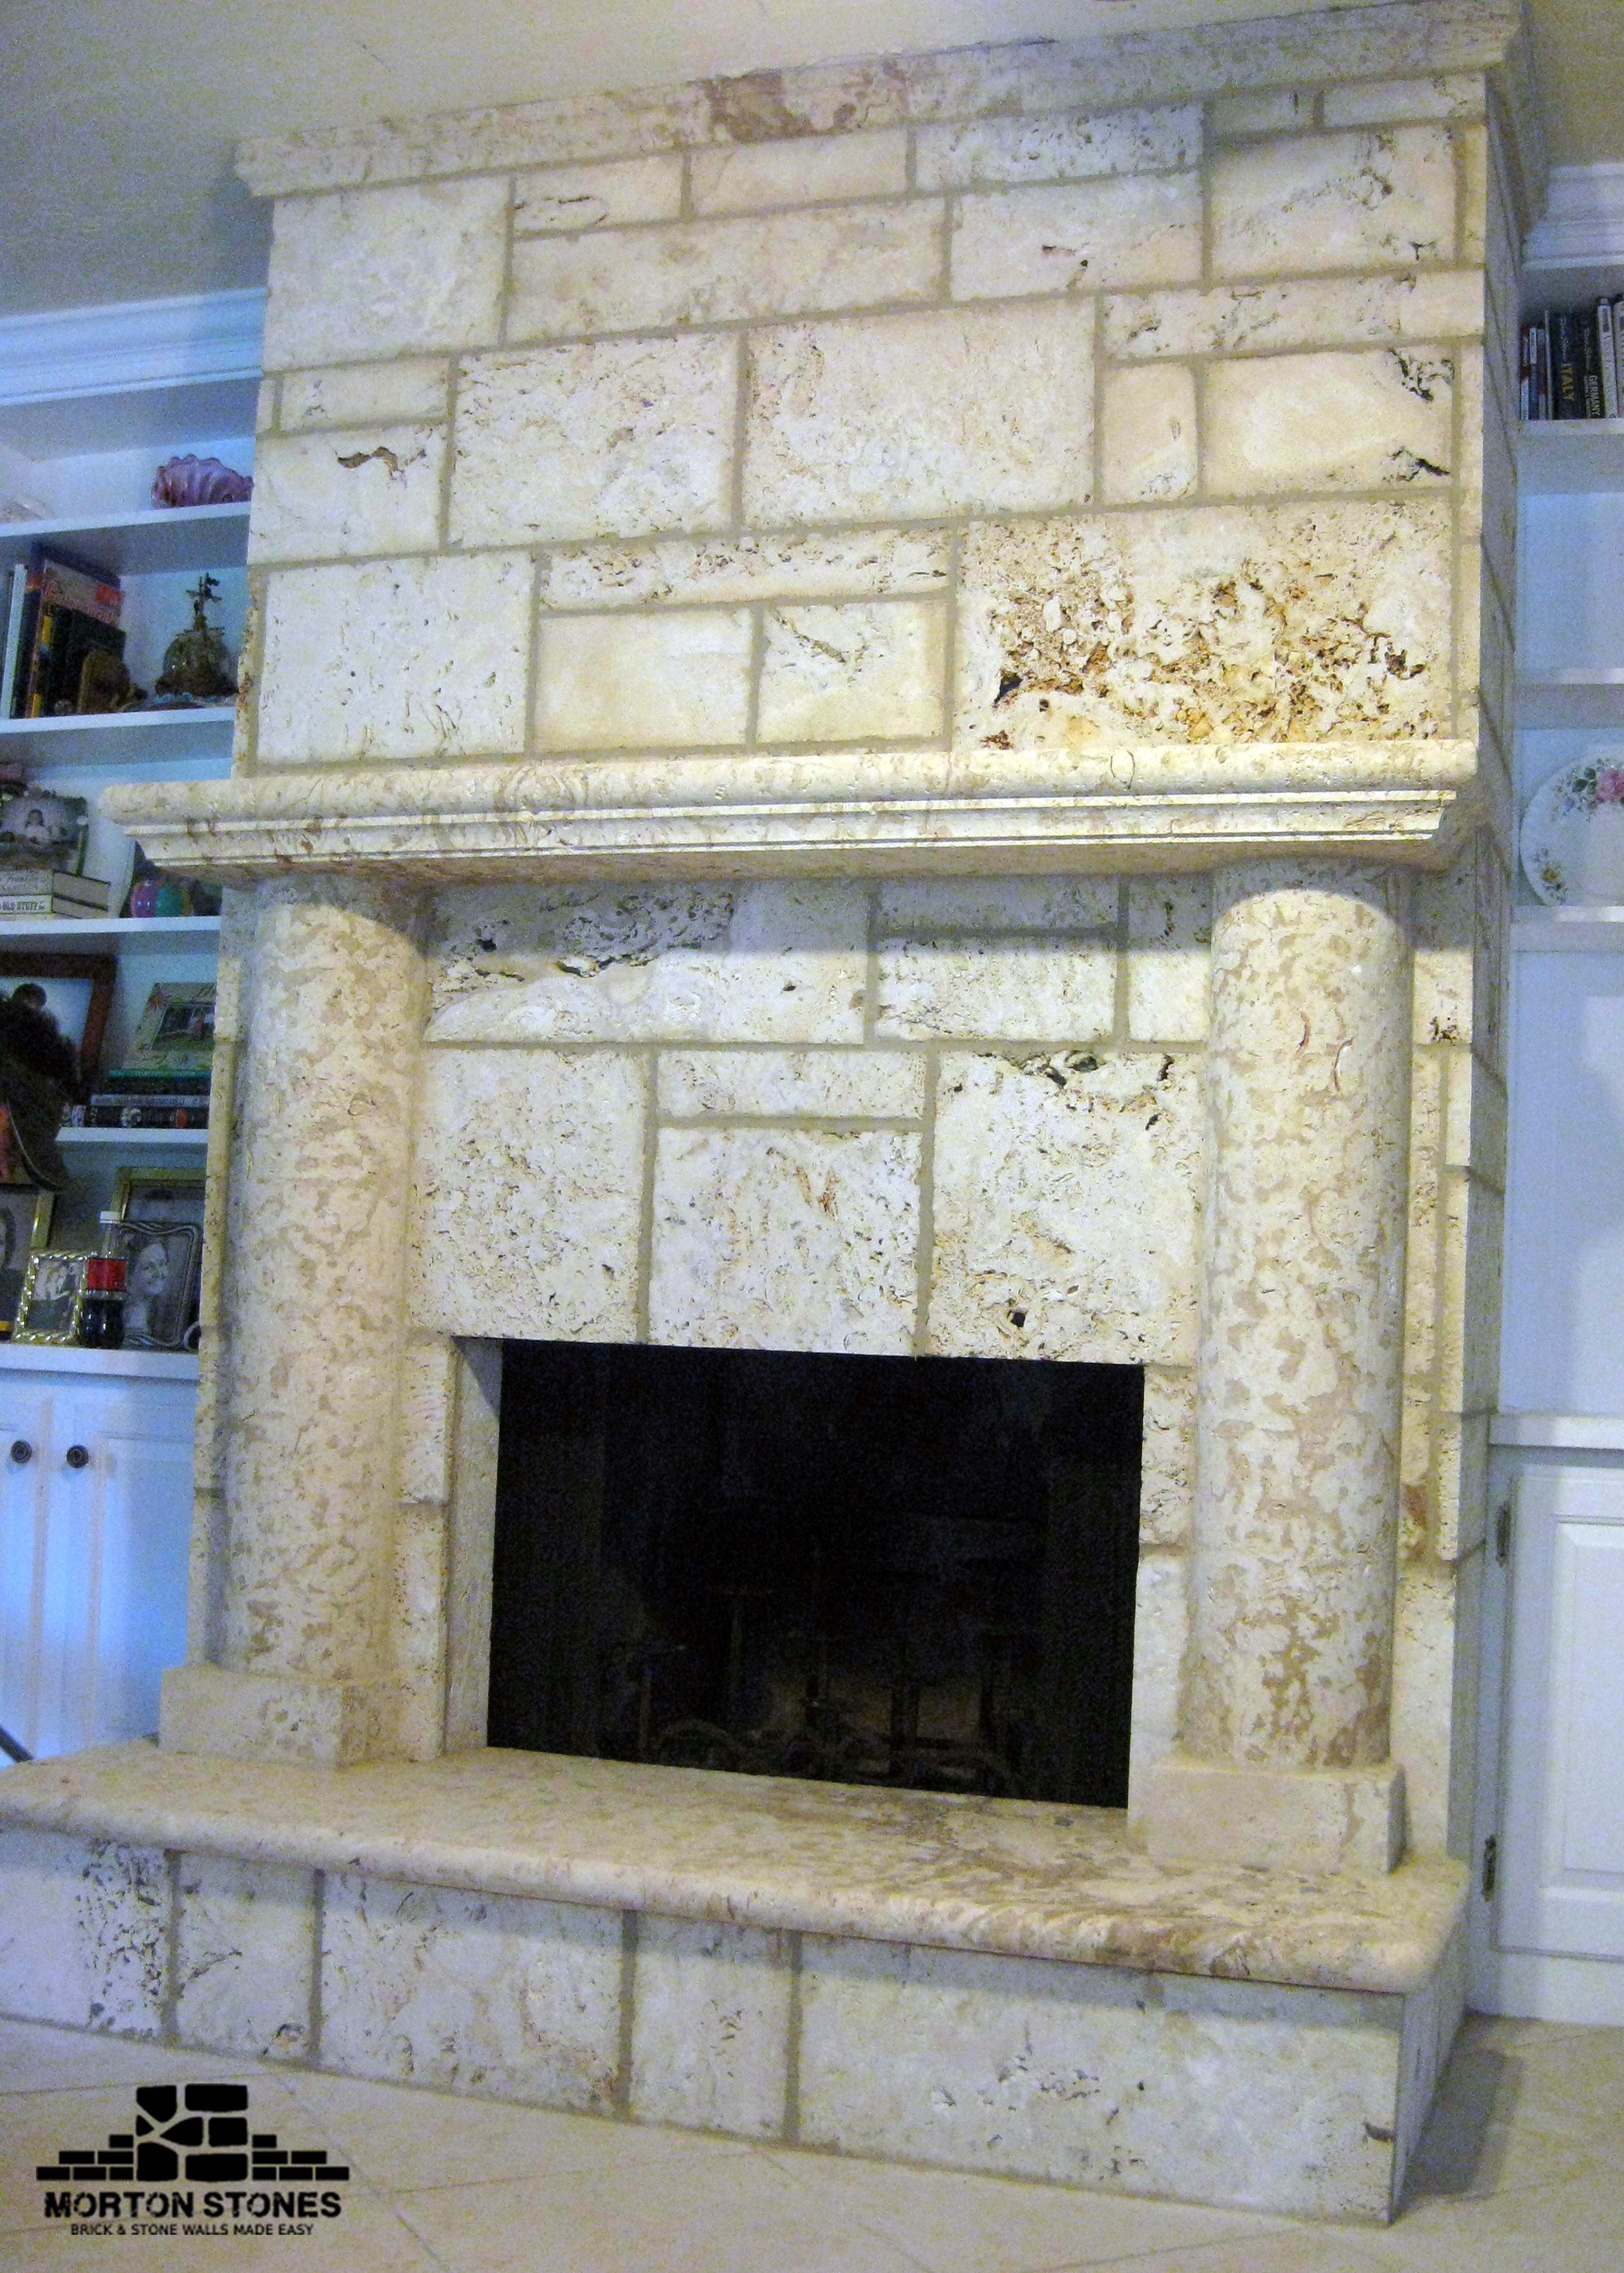 A Coral Stone Fireplace Helps Create A Welcoming Relaxing And